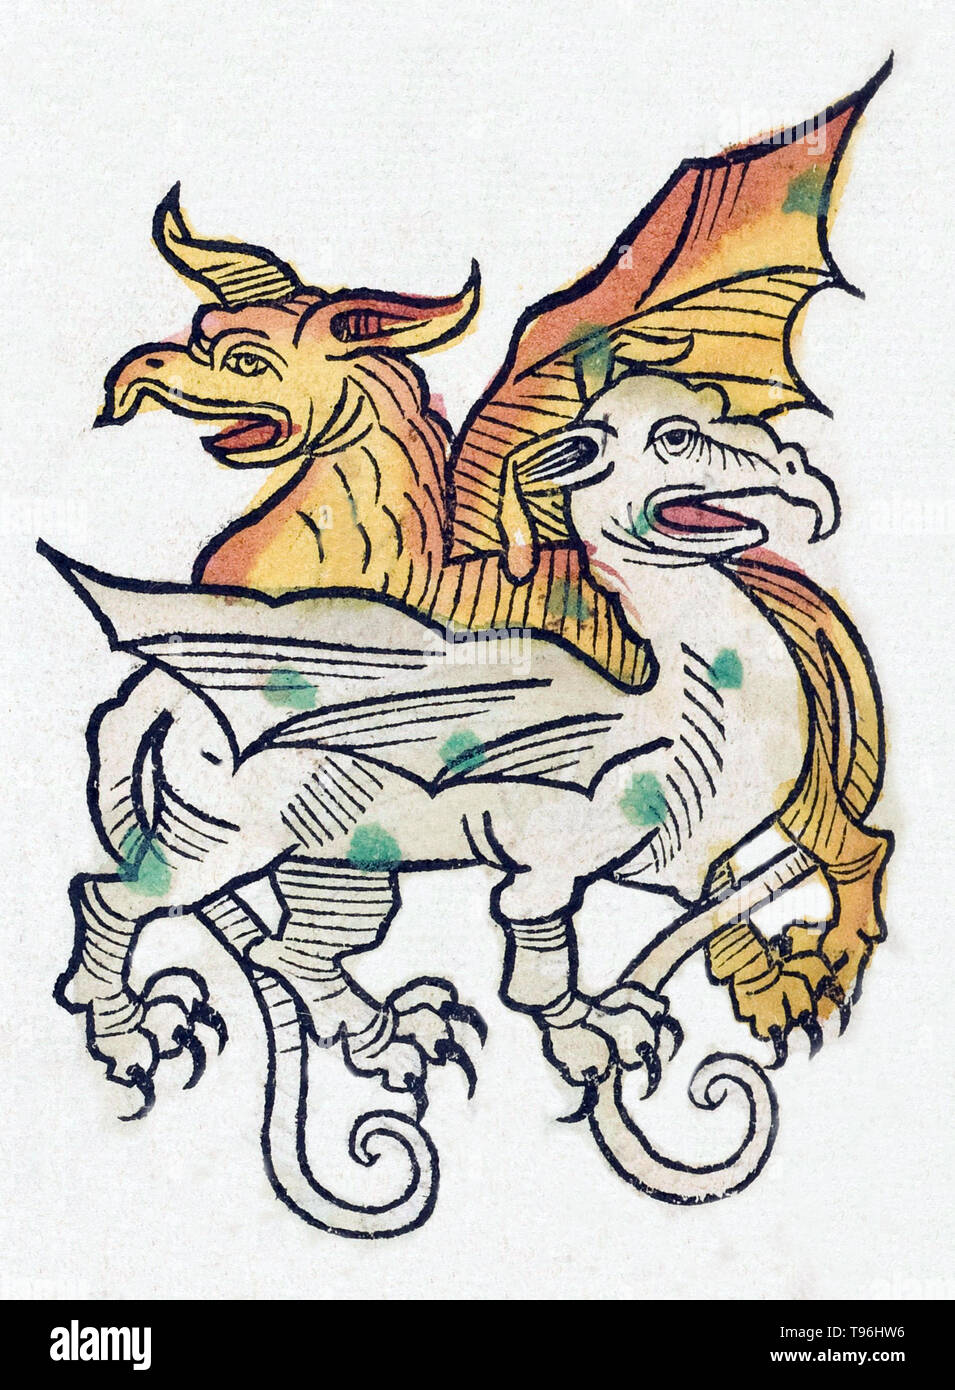 Mythical winged creatures. The Hortus Sanitatis (Garden of Health), the first natural history encyclopedia, was published by Jacob Meydenbach in Germany, 1491.  He describes plants and animals (both real and mythical) together with minerals and various trades, with their medicinal value and method of preparation. The hand-colored woodcut illustrations are stylized but often easily recognizable. 1547 edition. - Stock Image